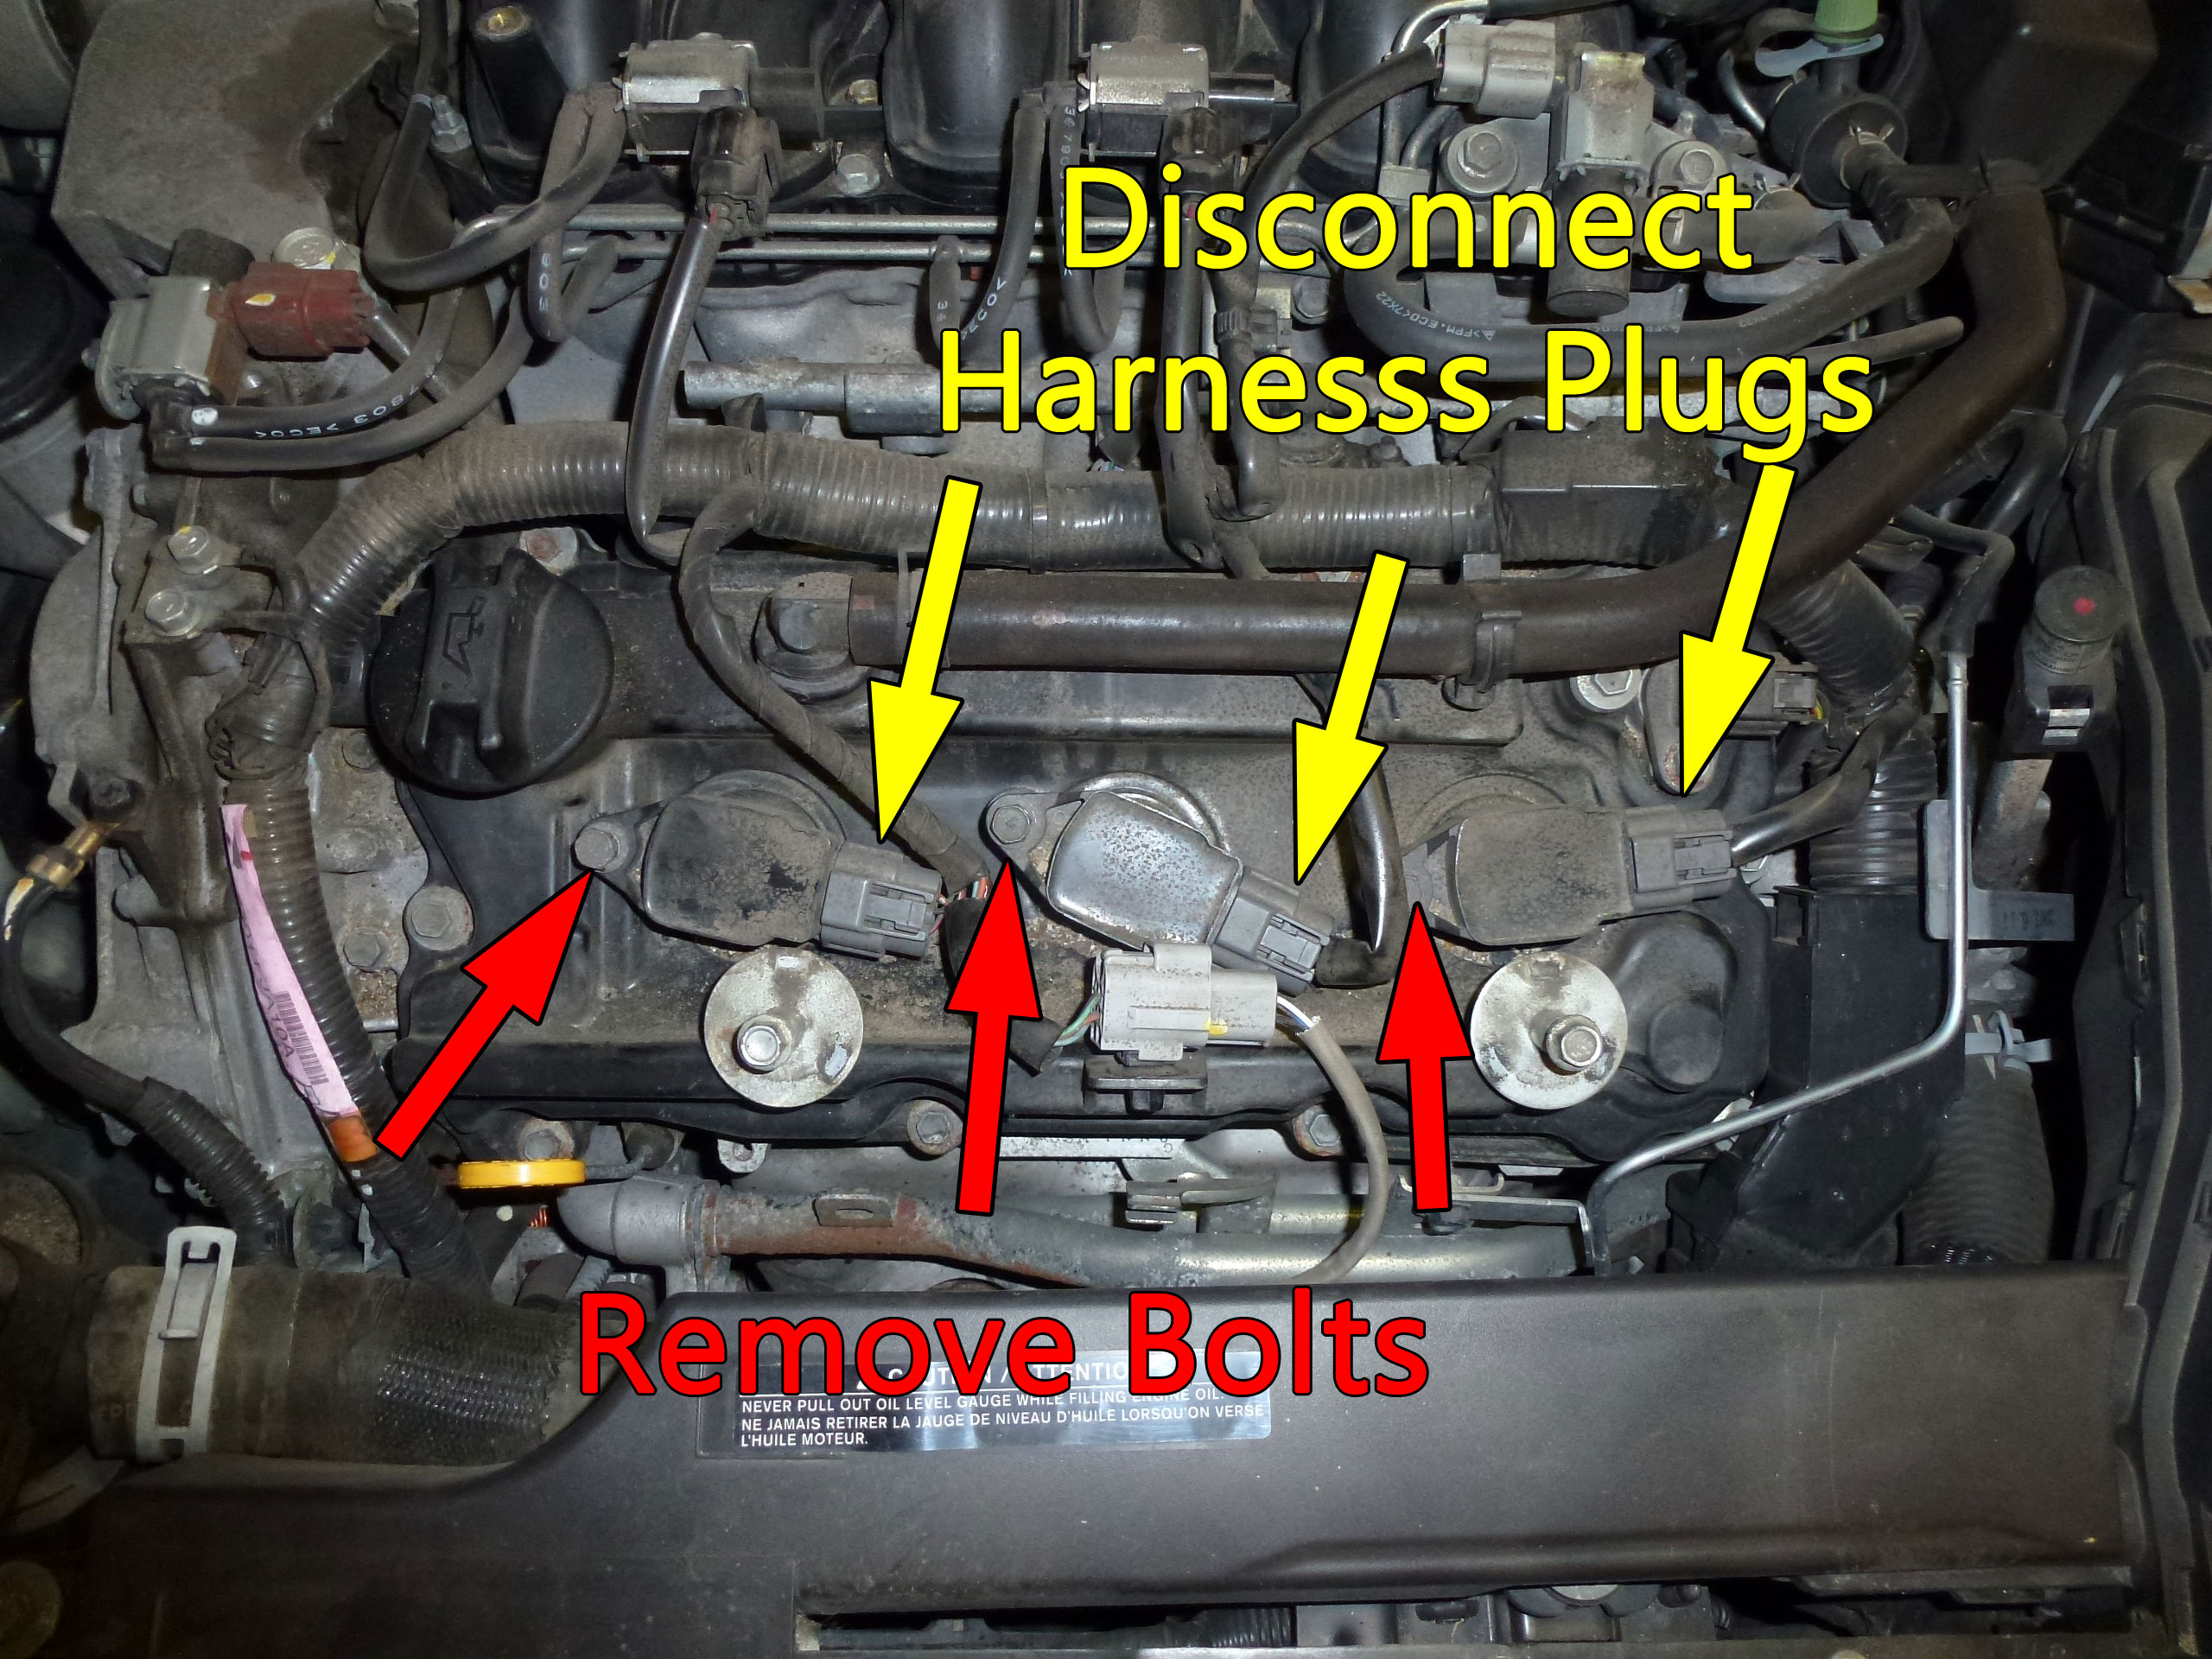 After removing the cover, start by swapping out the front three plugs. Unplug the three harness plugs then remove the bolt that secures the coil to the valve cover.